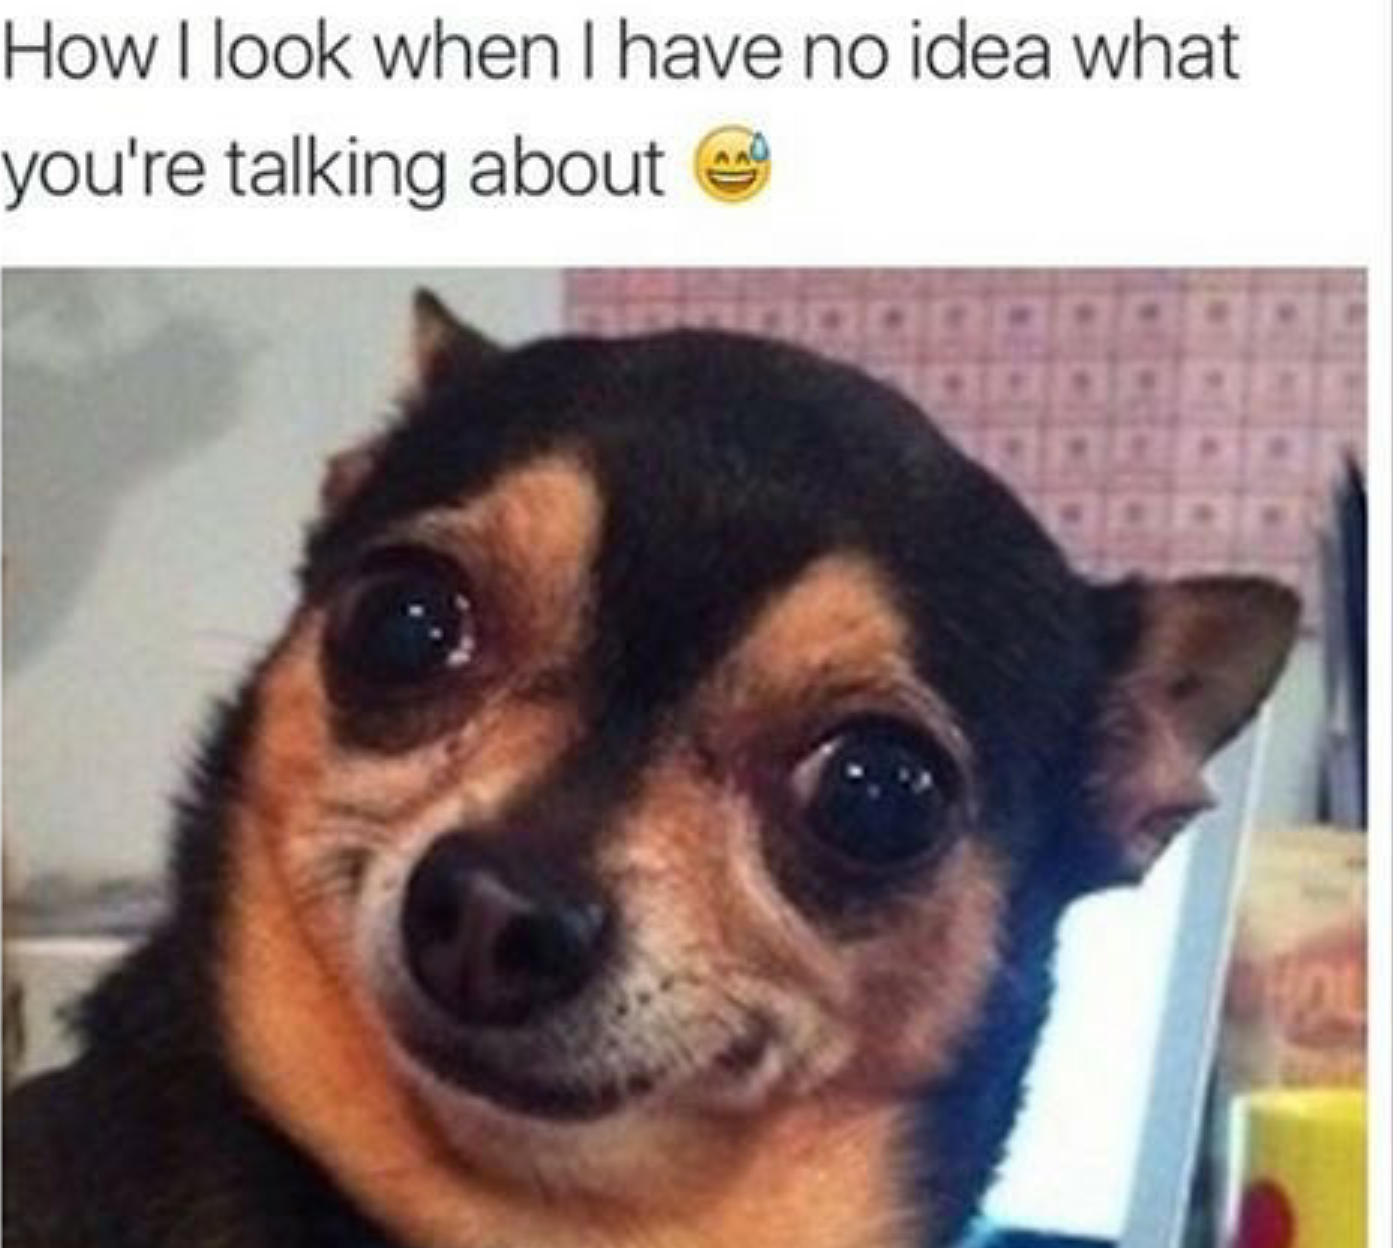 How I look when I have no Idea what you're talking about